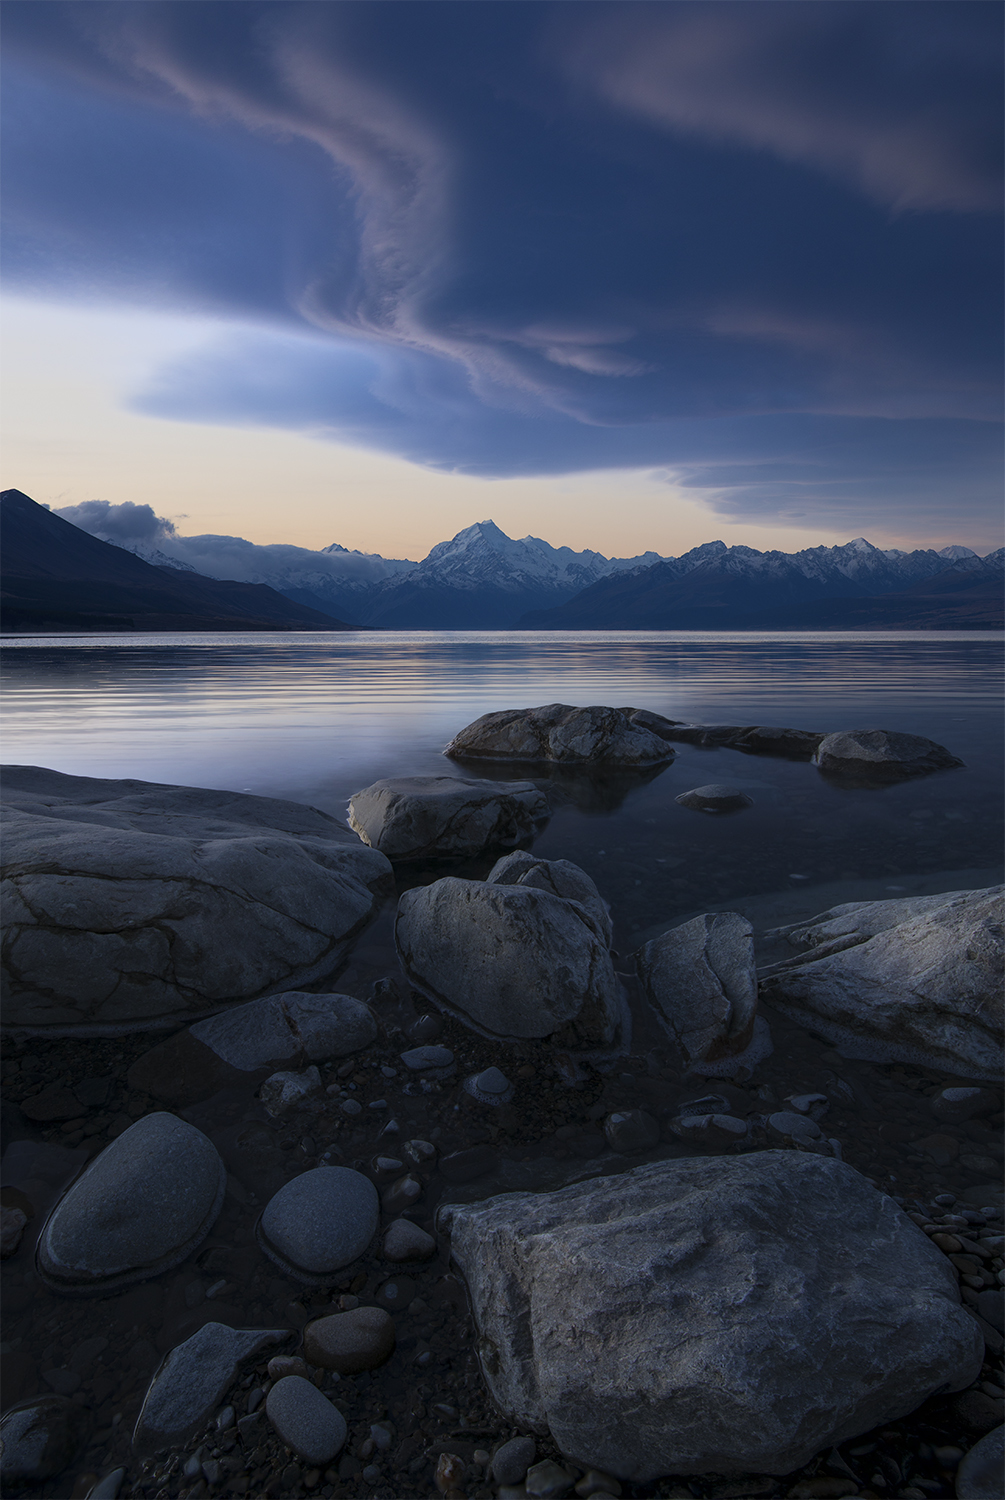 Lenticular Cloud over Lake Pukaki, Mt Cook New Zealand